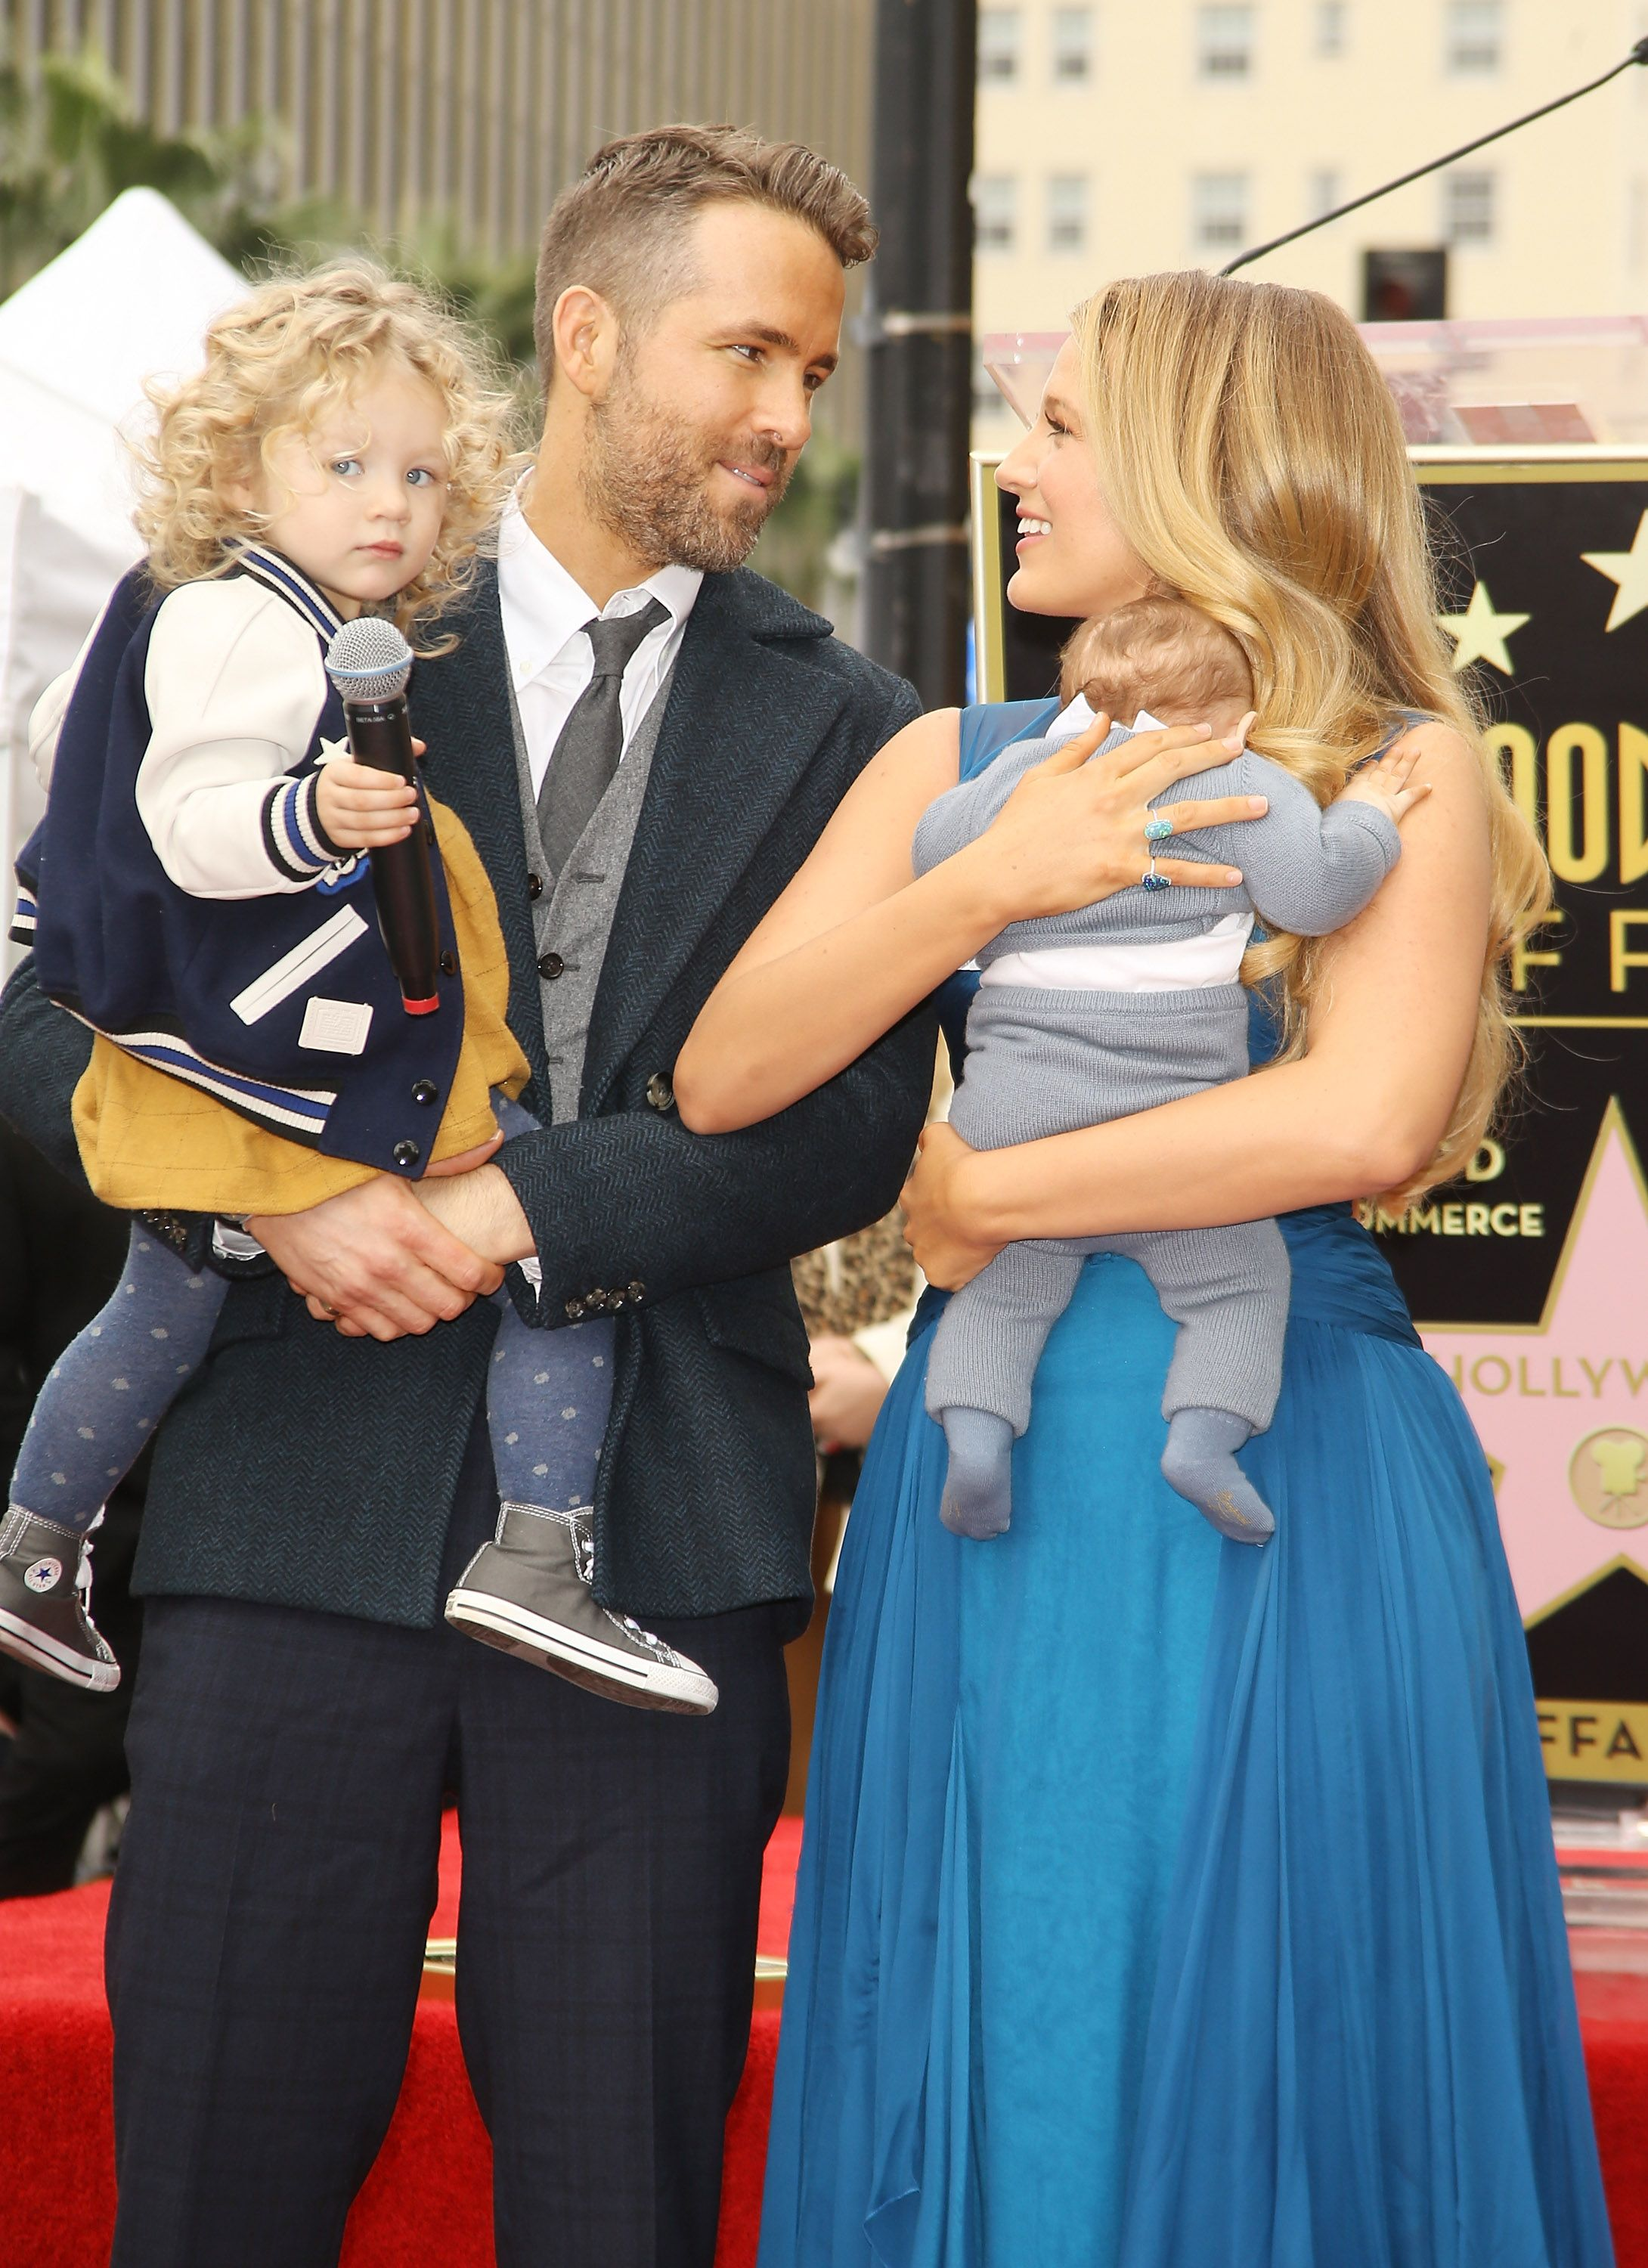 Ryan Reynolds and Blake Lively with their children on The Hollywood Walk of Fame in 2016 in Hollywood | Source: Getty Images